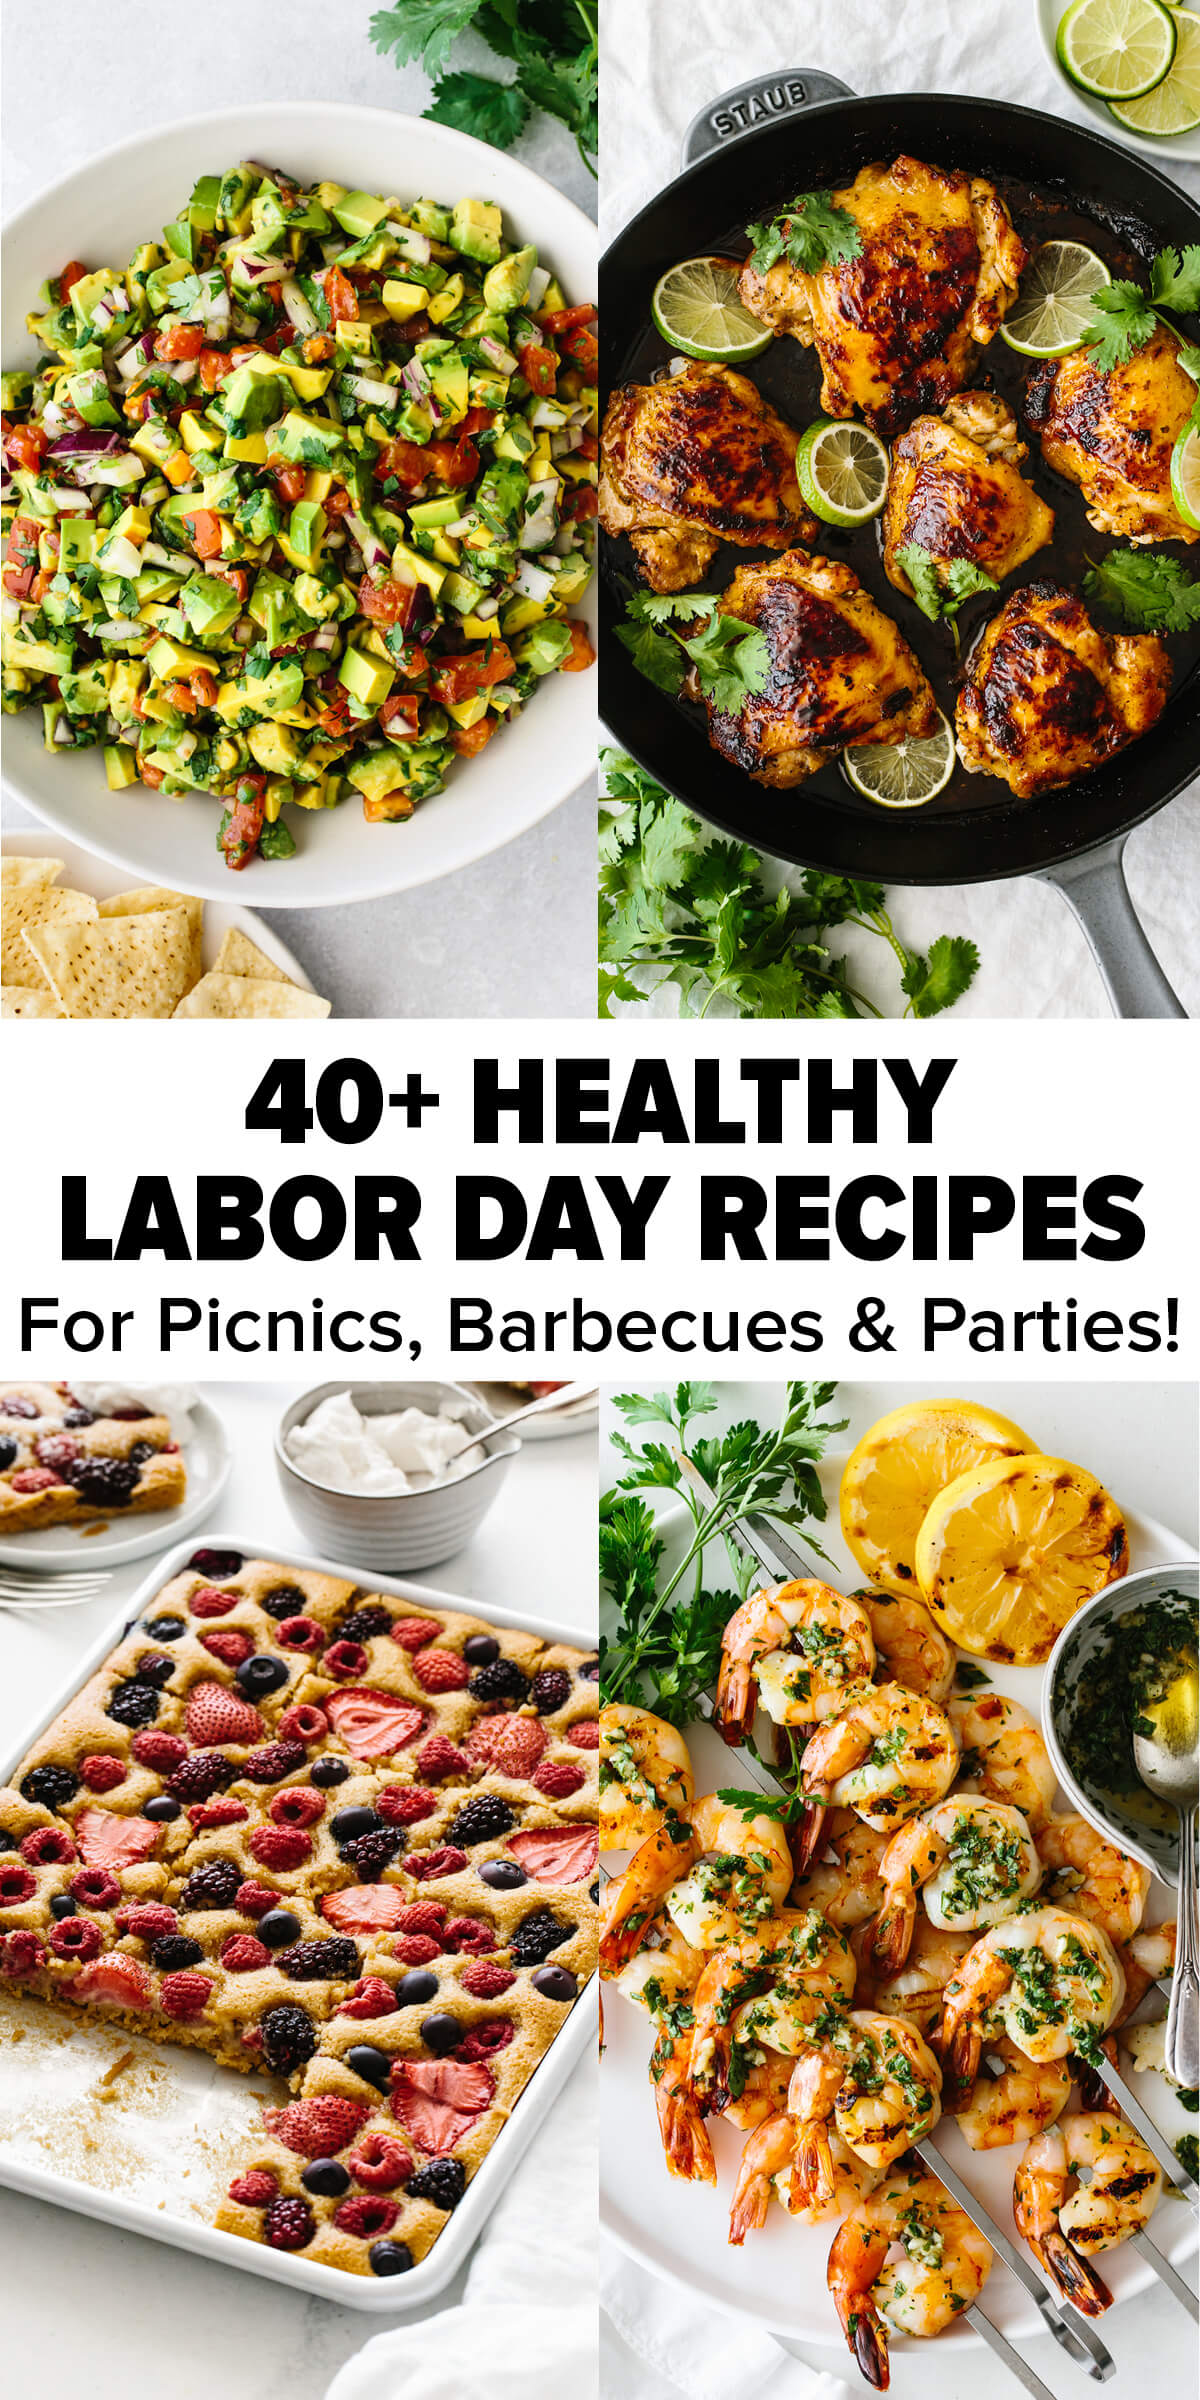 Healthy Labor Day Recipes photo compilation.